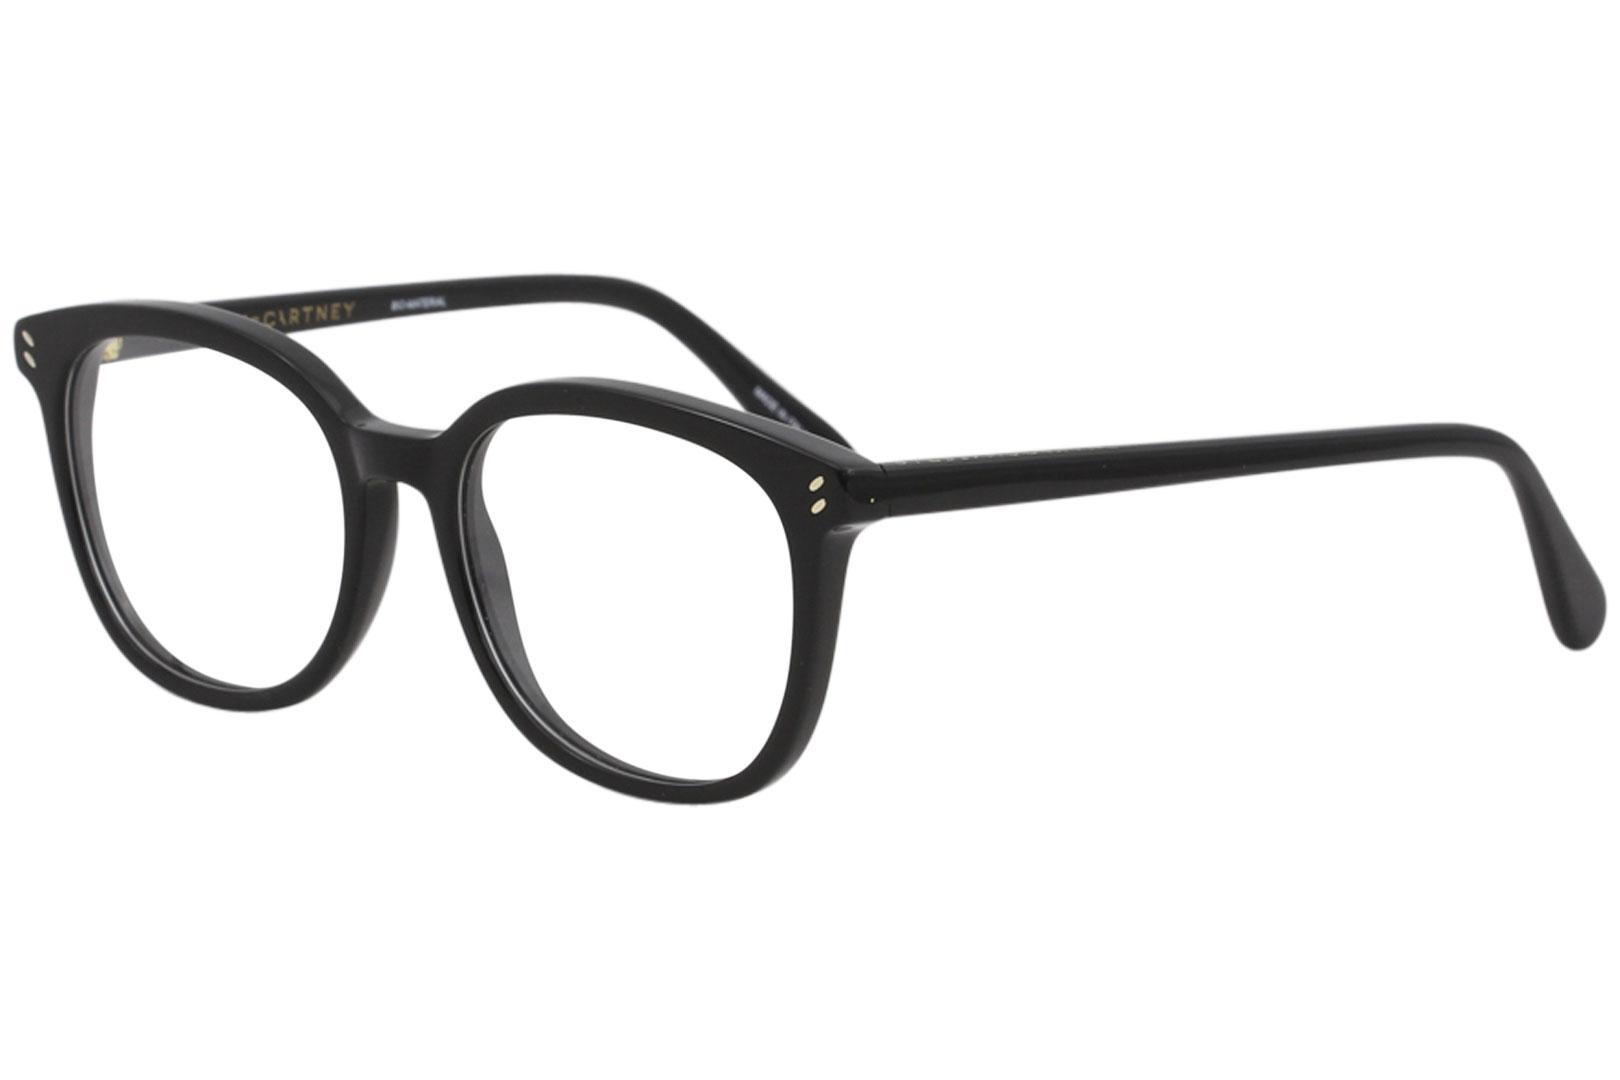 Image of Stella McCartney Women's Eyeglasses SC0080OI SC/0080/OI Full Rim Optical Frame - Black - Lens 52 Bridge 18 Temple 140mm